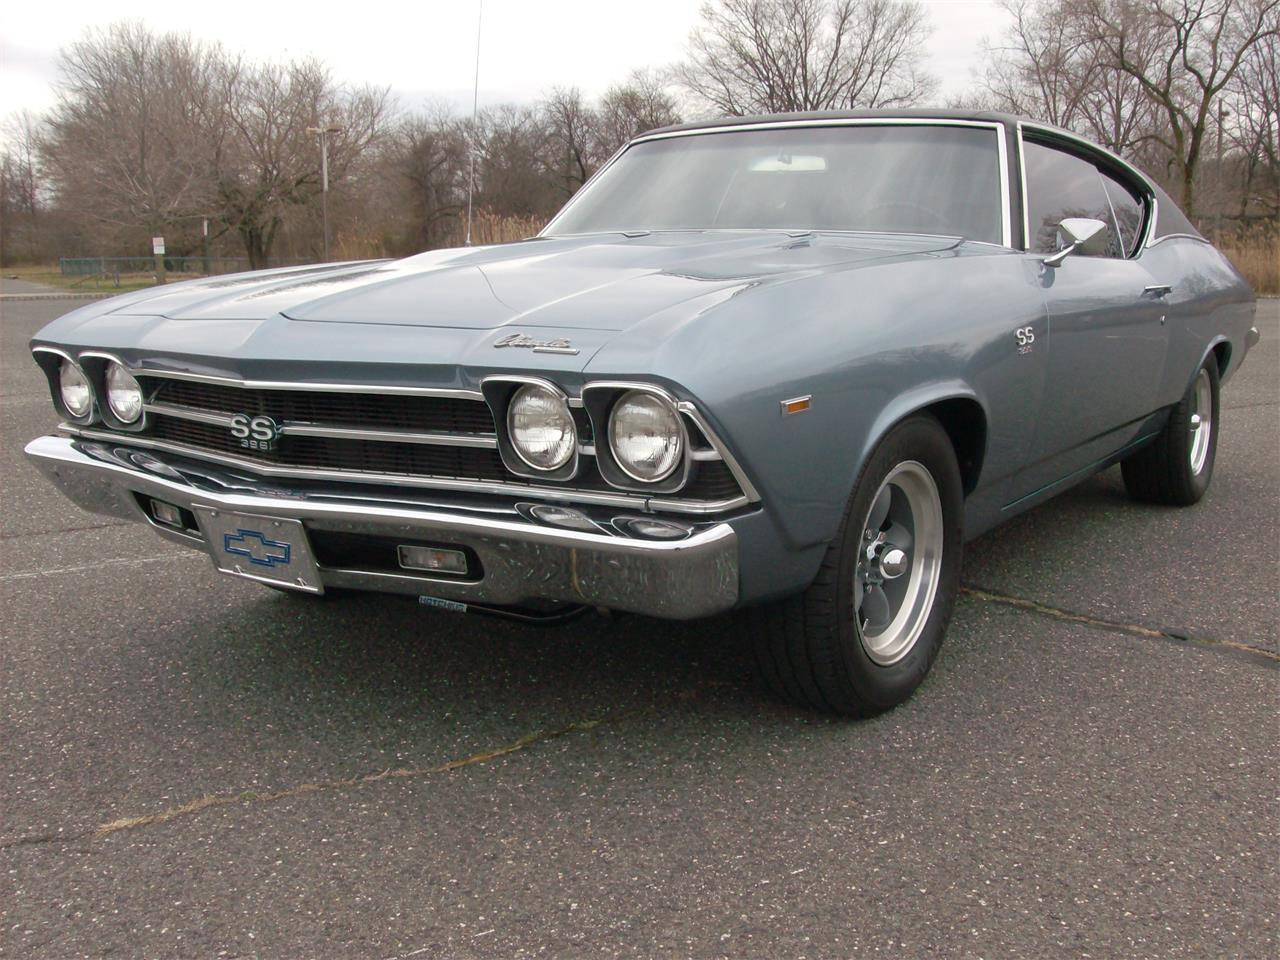 hight resolution of wiring diagram besides 1966 chevy chevelle ss for sale on fuse andwrg 4272 69 chevelle